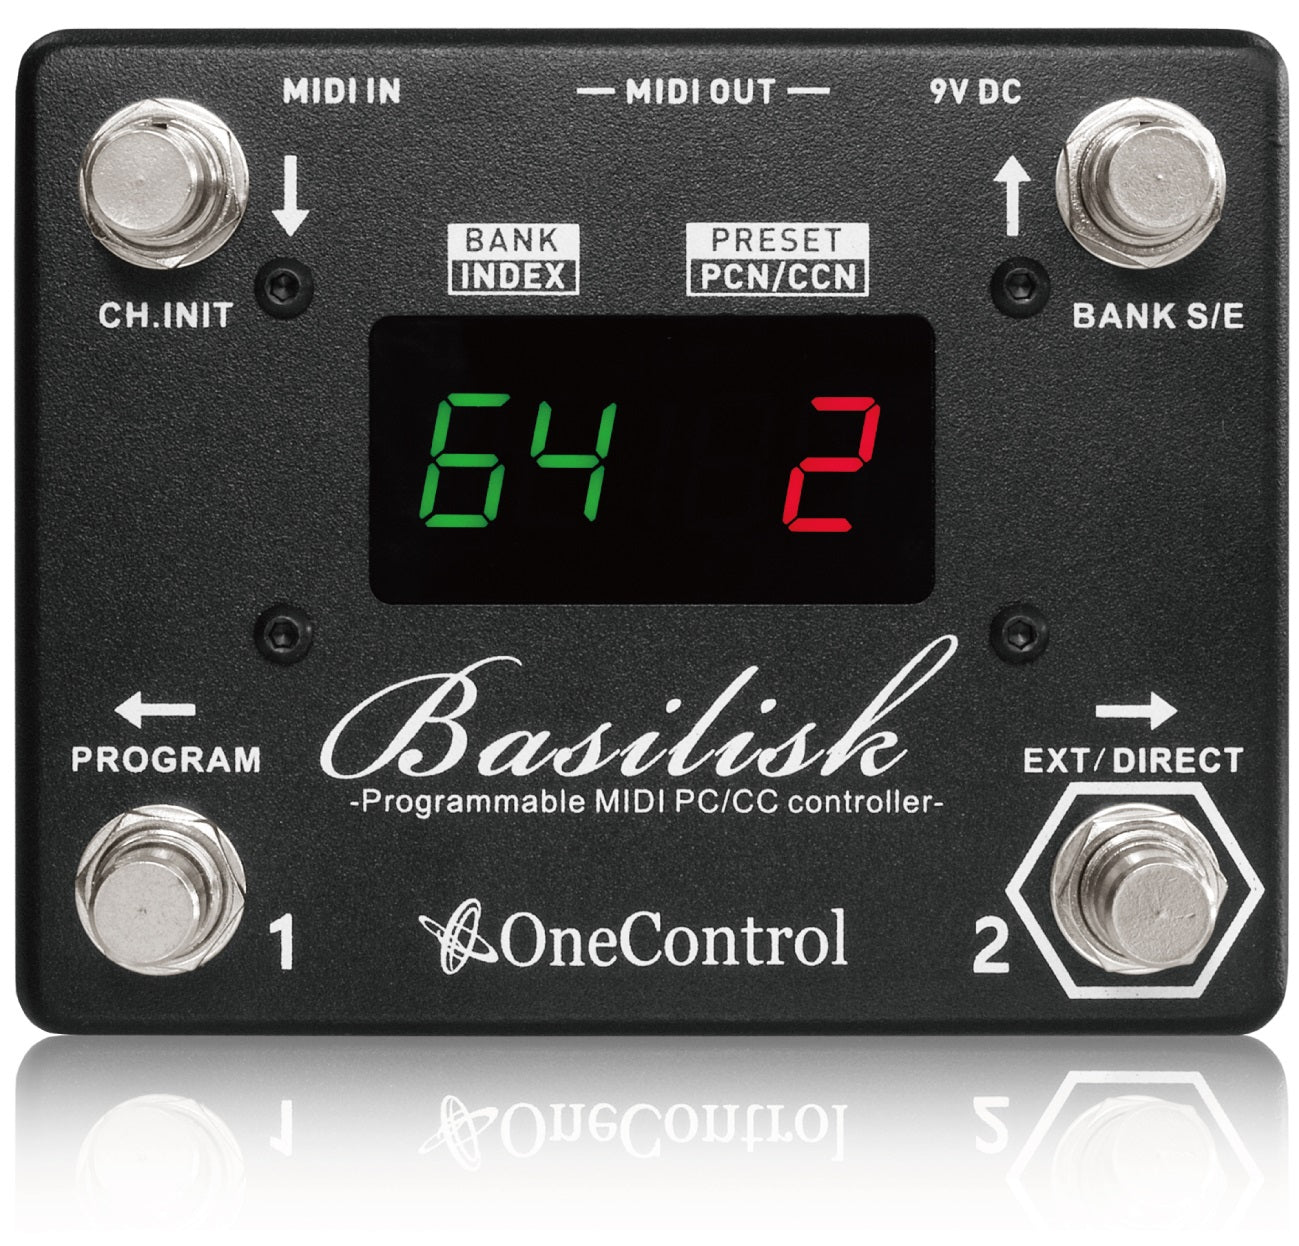 One Control Basilisk Programmable Midi PC/CC Controller